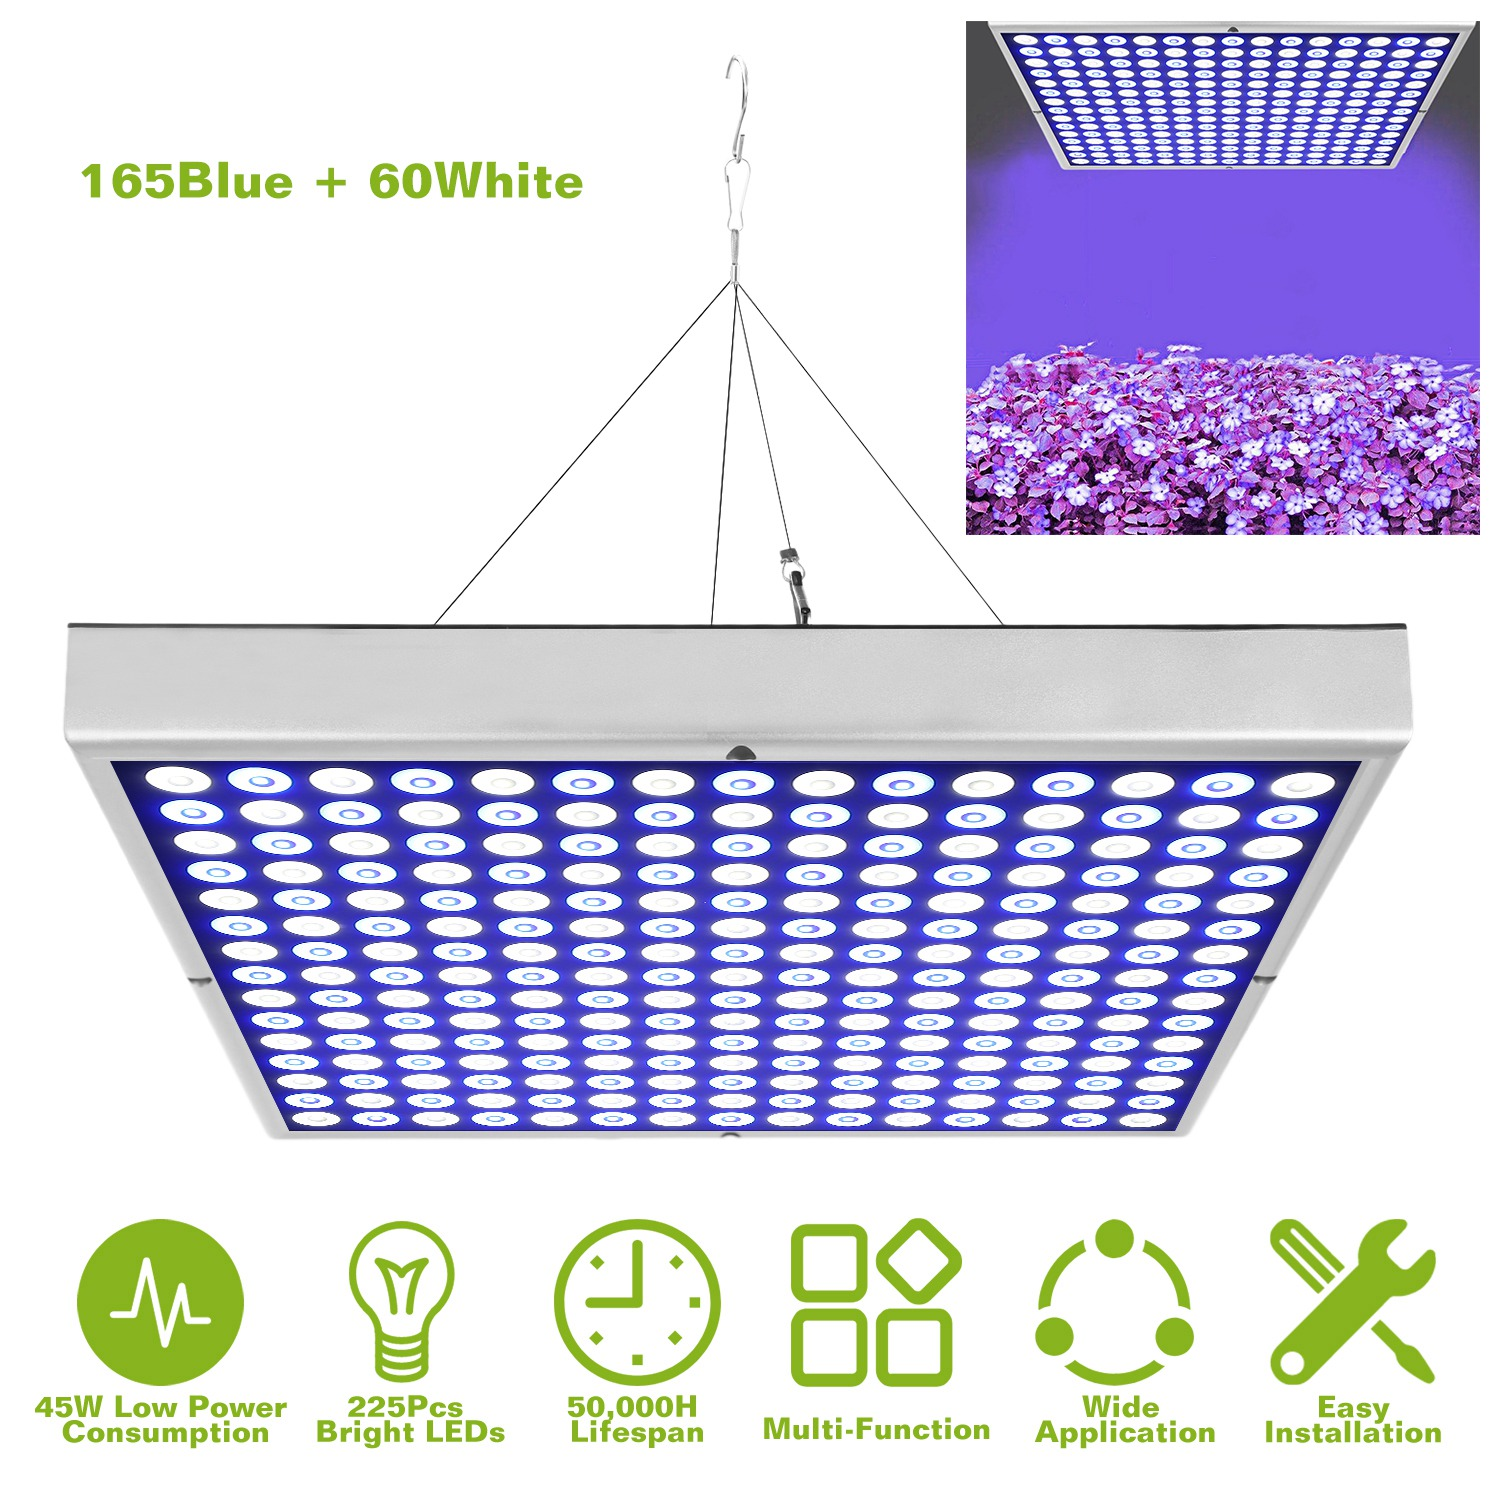 Details About 45w Led Grow Light Panel Indoor Hydroponic Plants Veg Flower For All Grow Stage